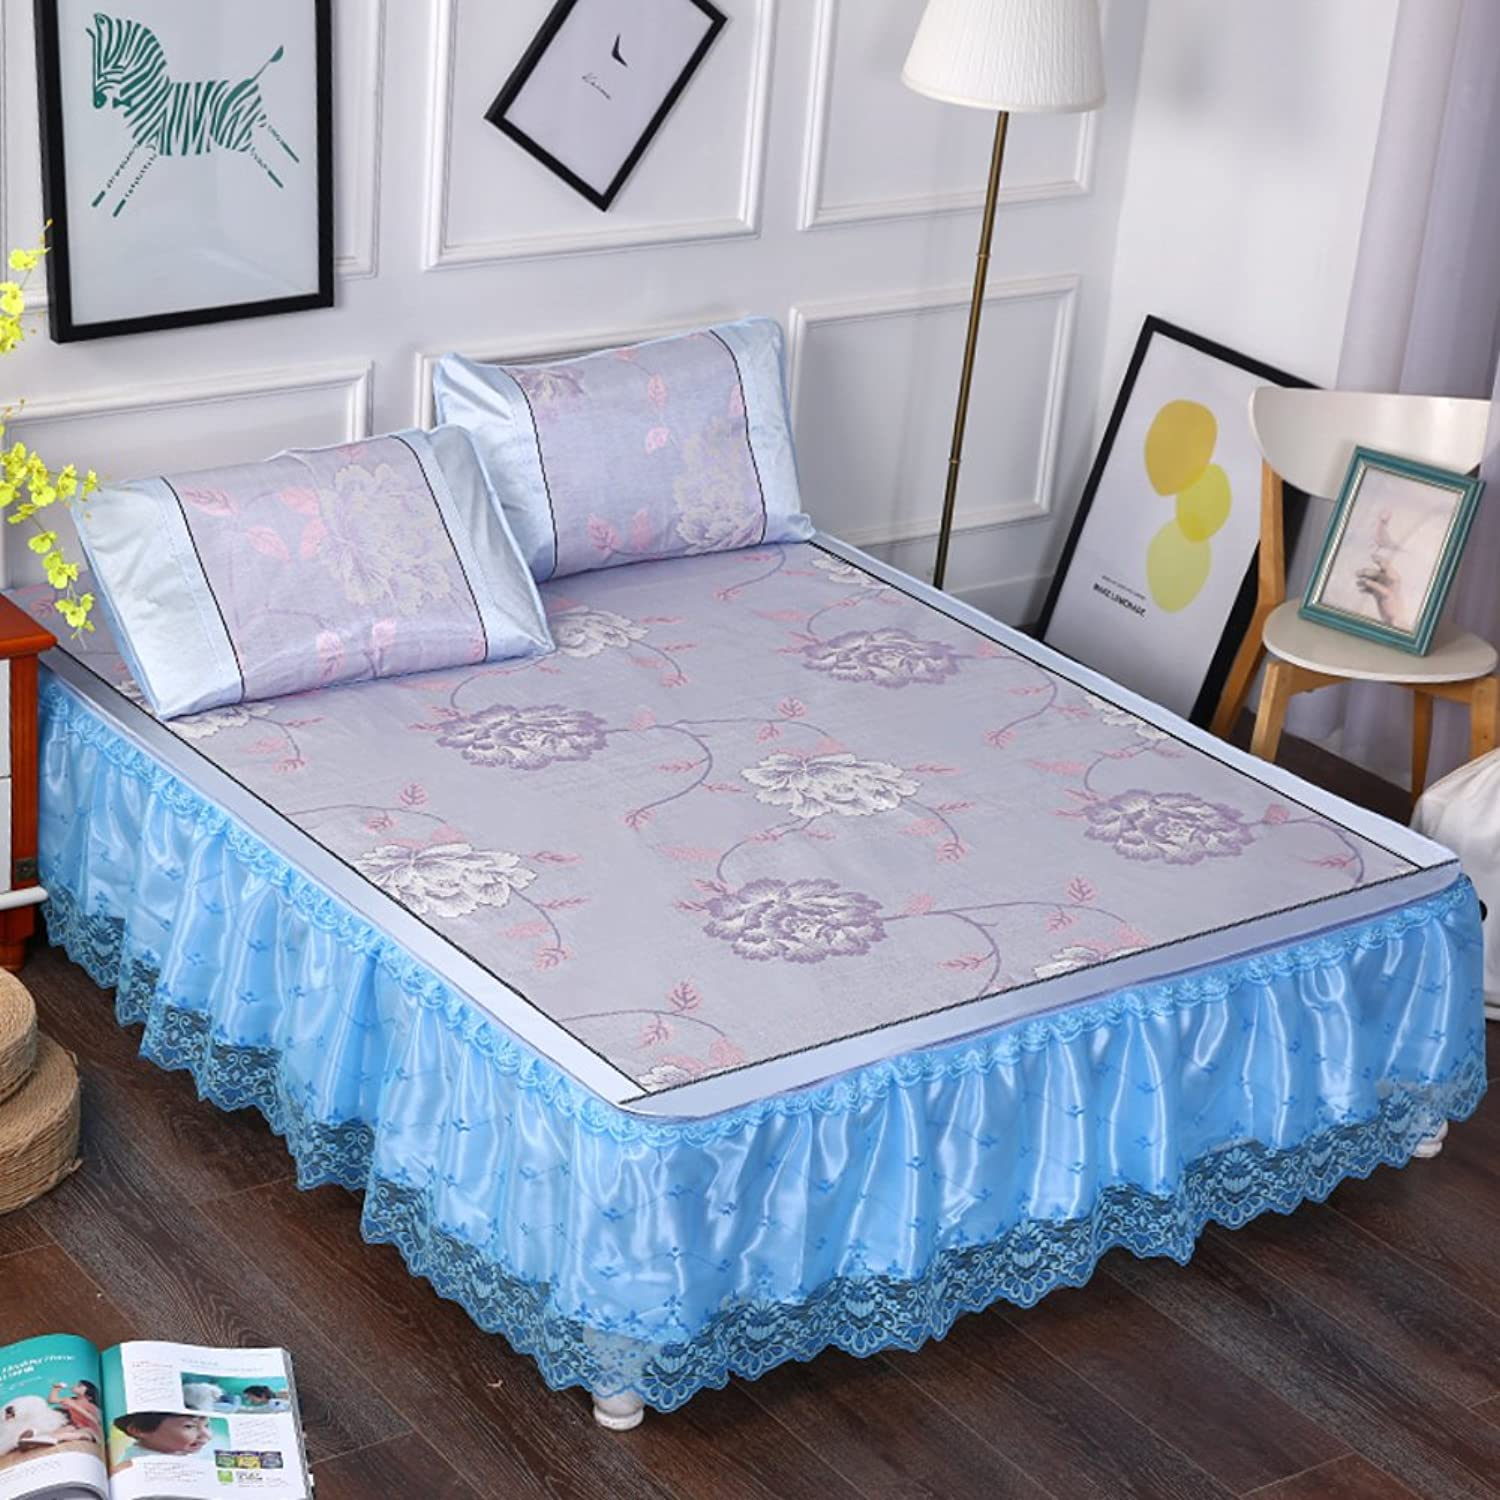 Summer lace Bed Skirt, Removable Three Sets ice Silk Summer mat Cool pad Flower Hypoallergenic Breathable Sleeping mat -C 150  200cm(59x79inch)